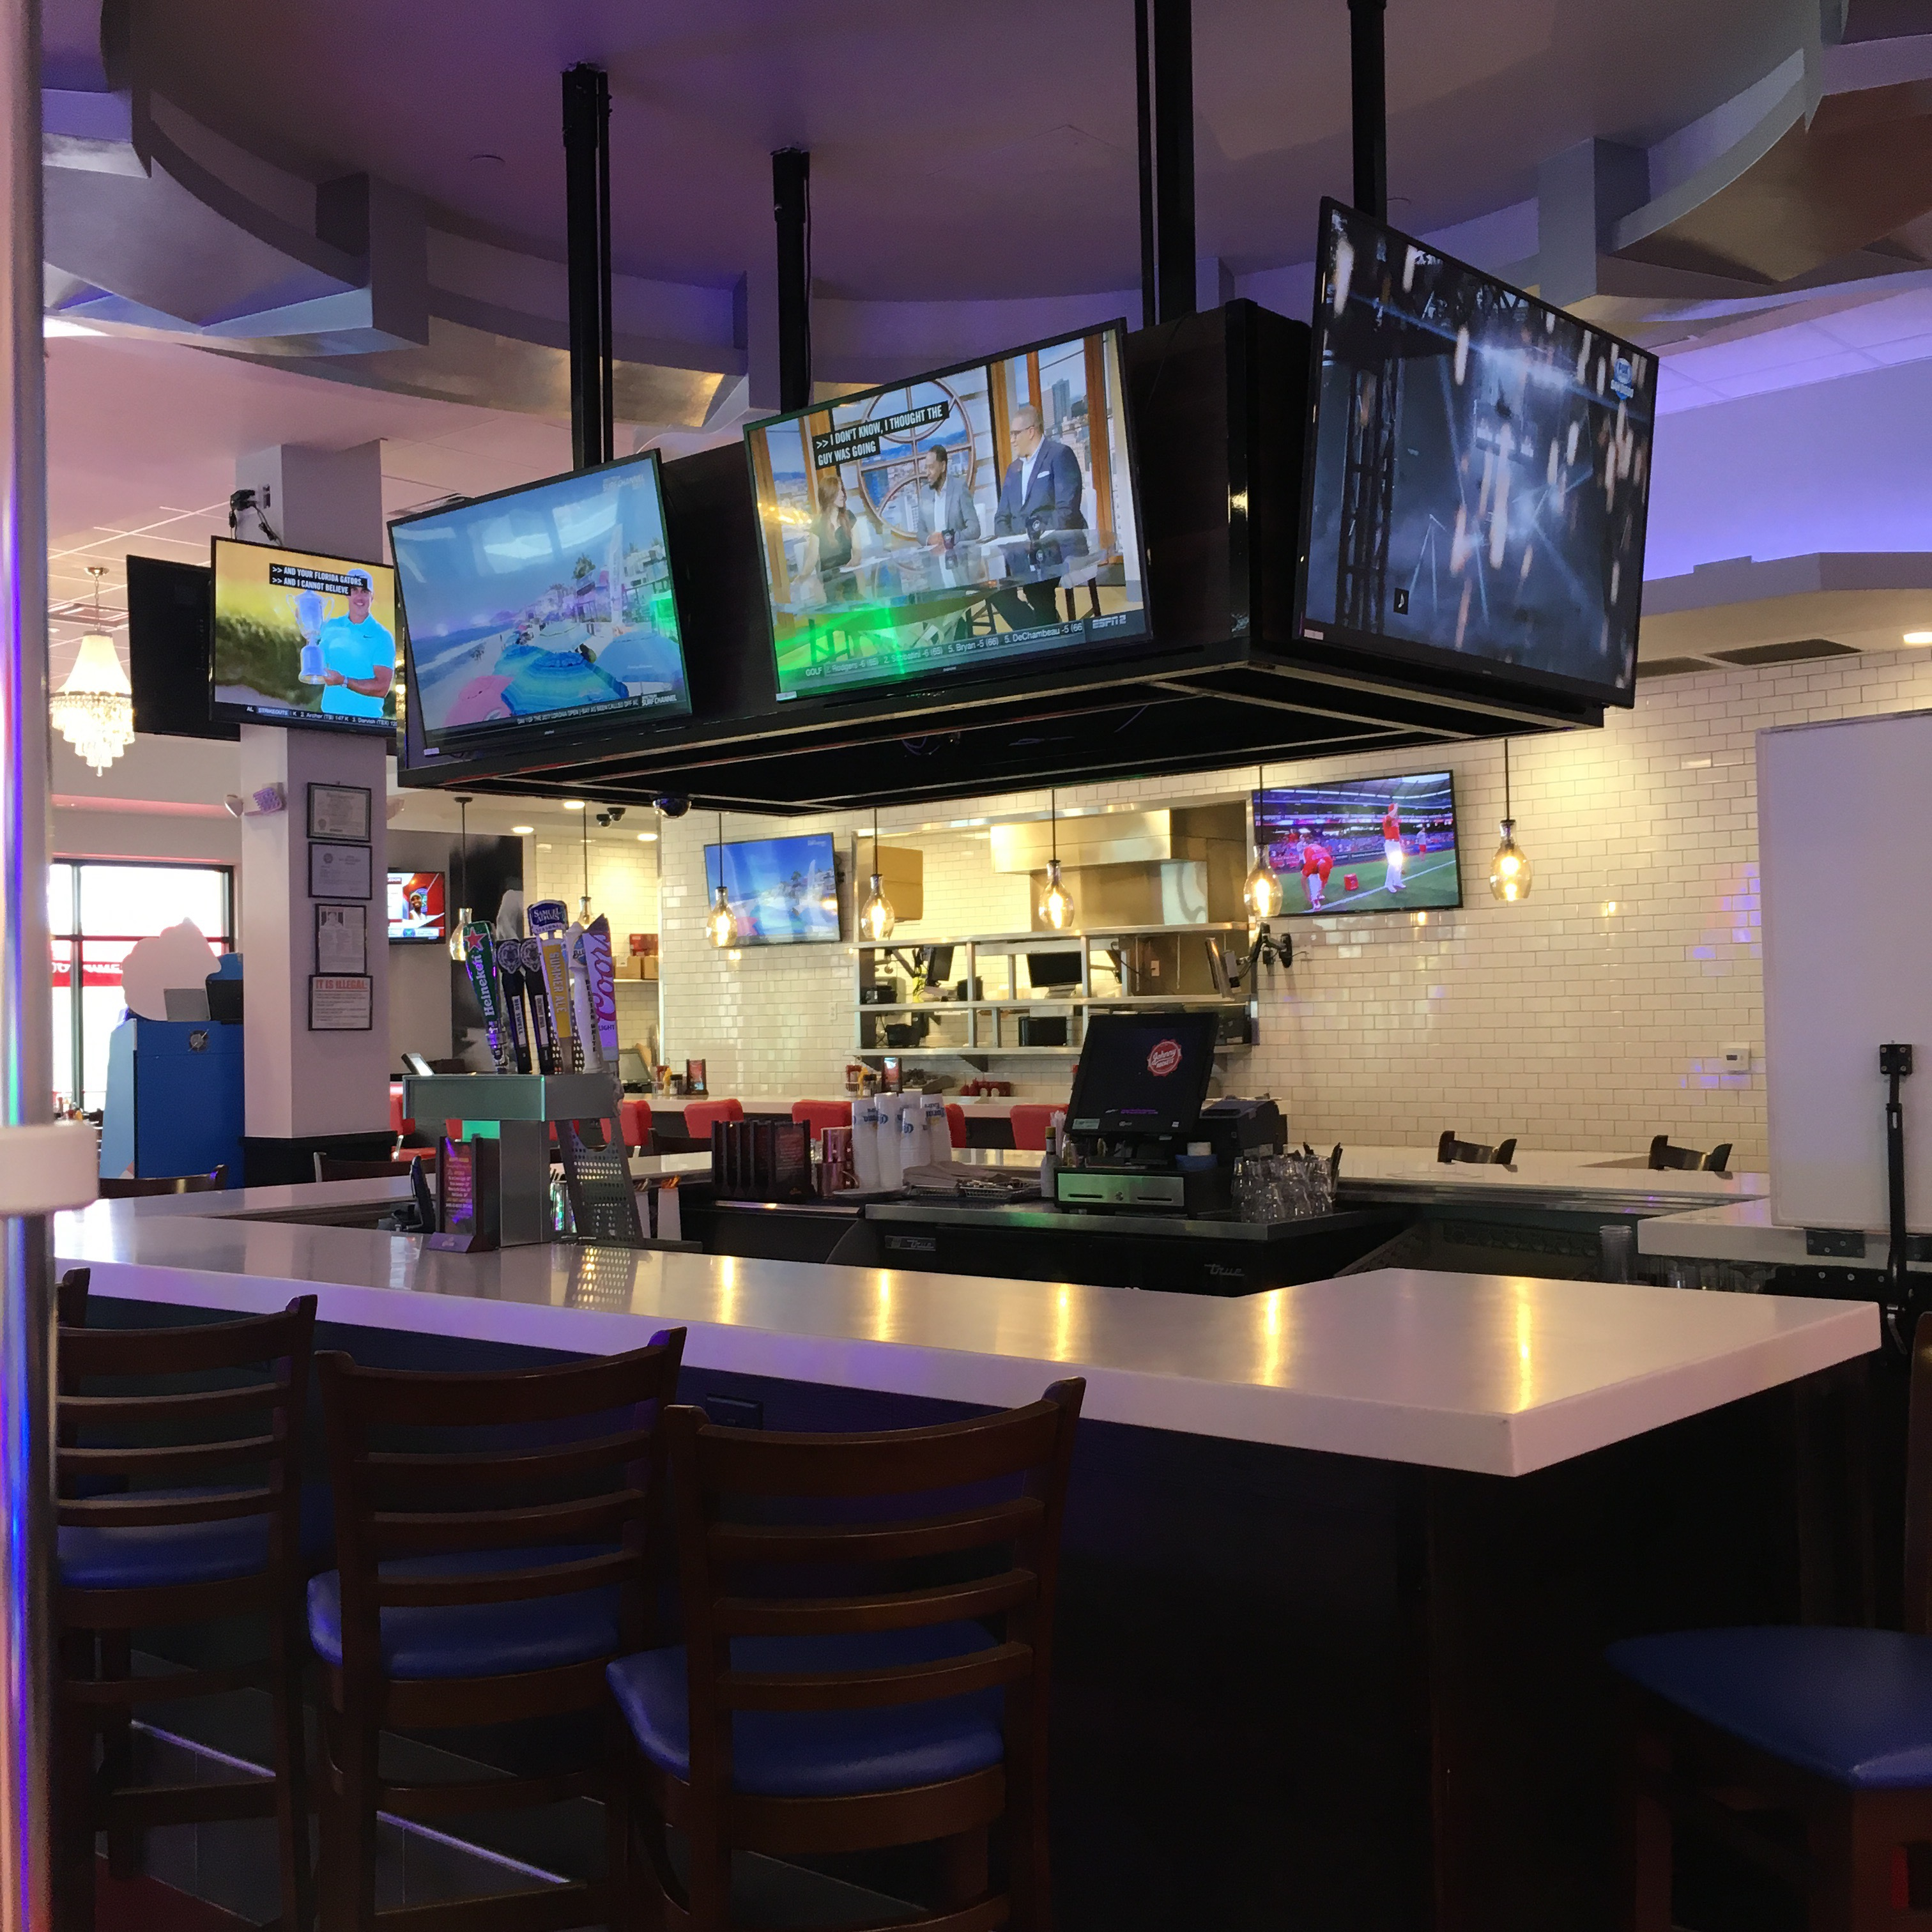 Restaurant bars retail store conference room school